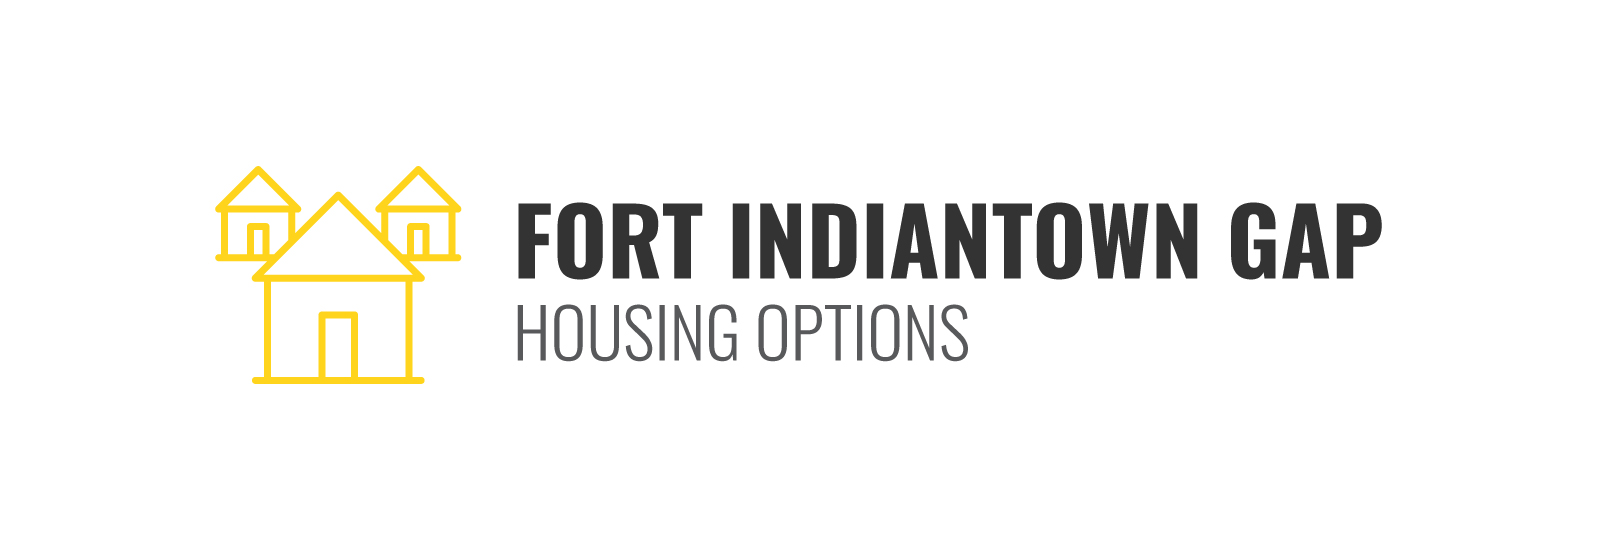 Fort Indiantown Gap Temporary Housing Options